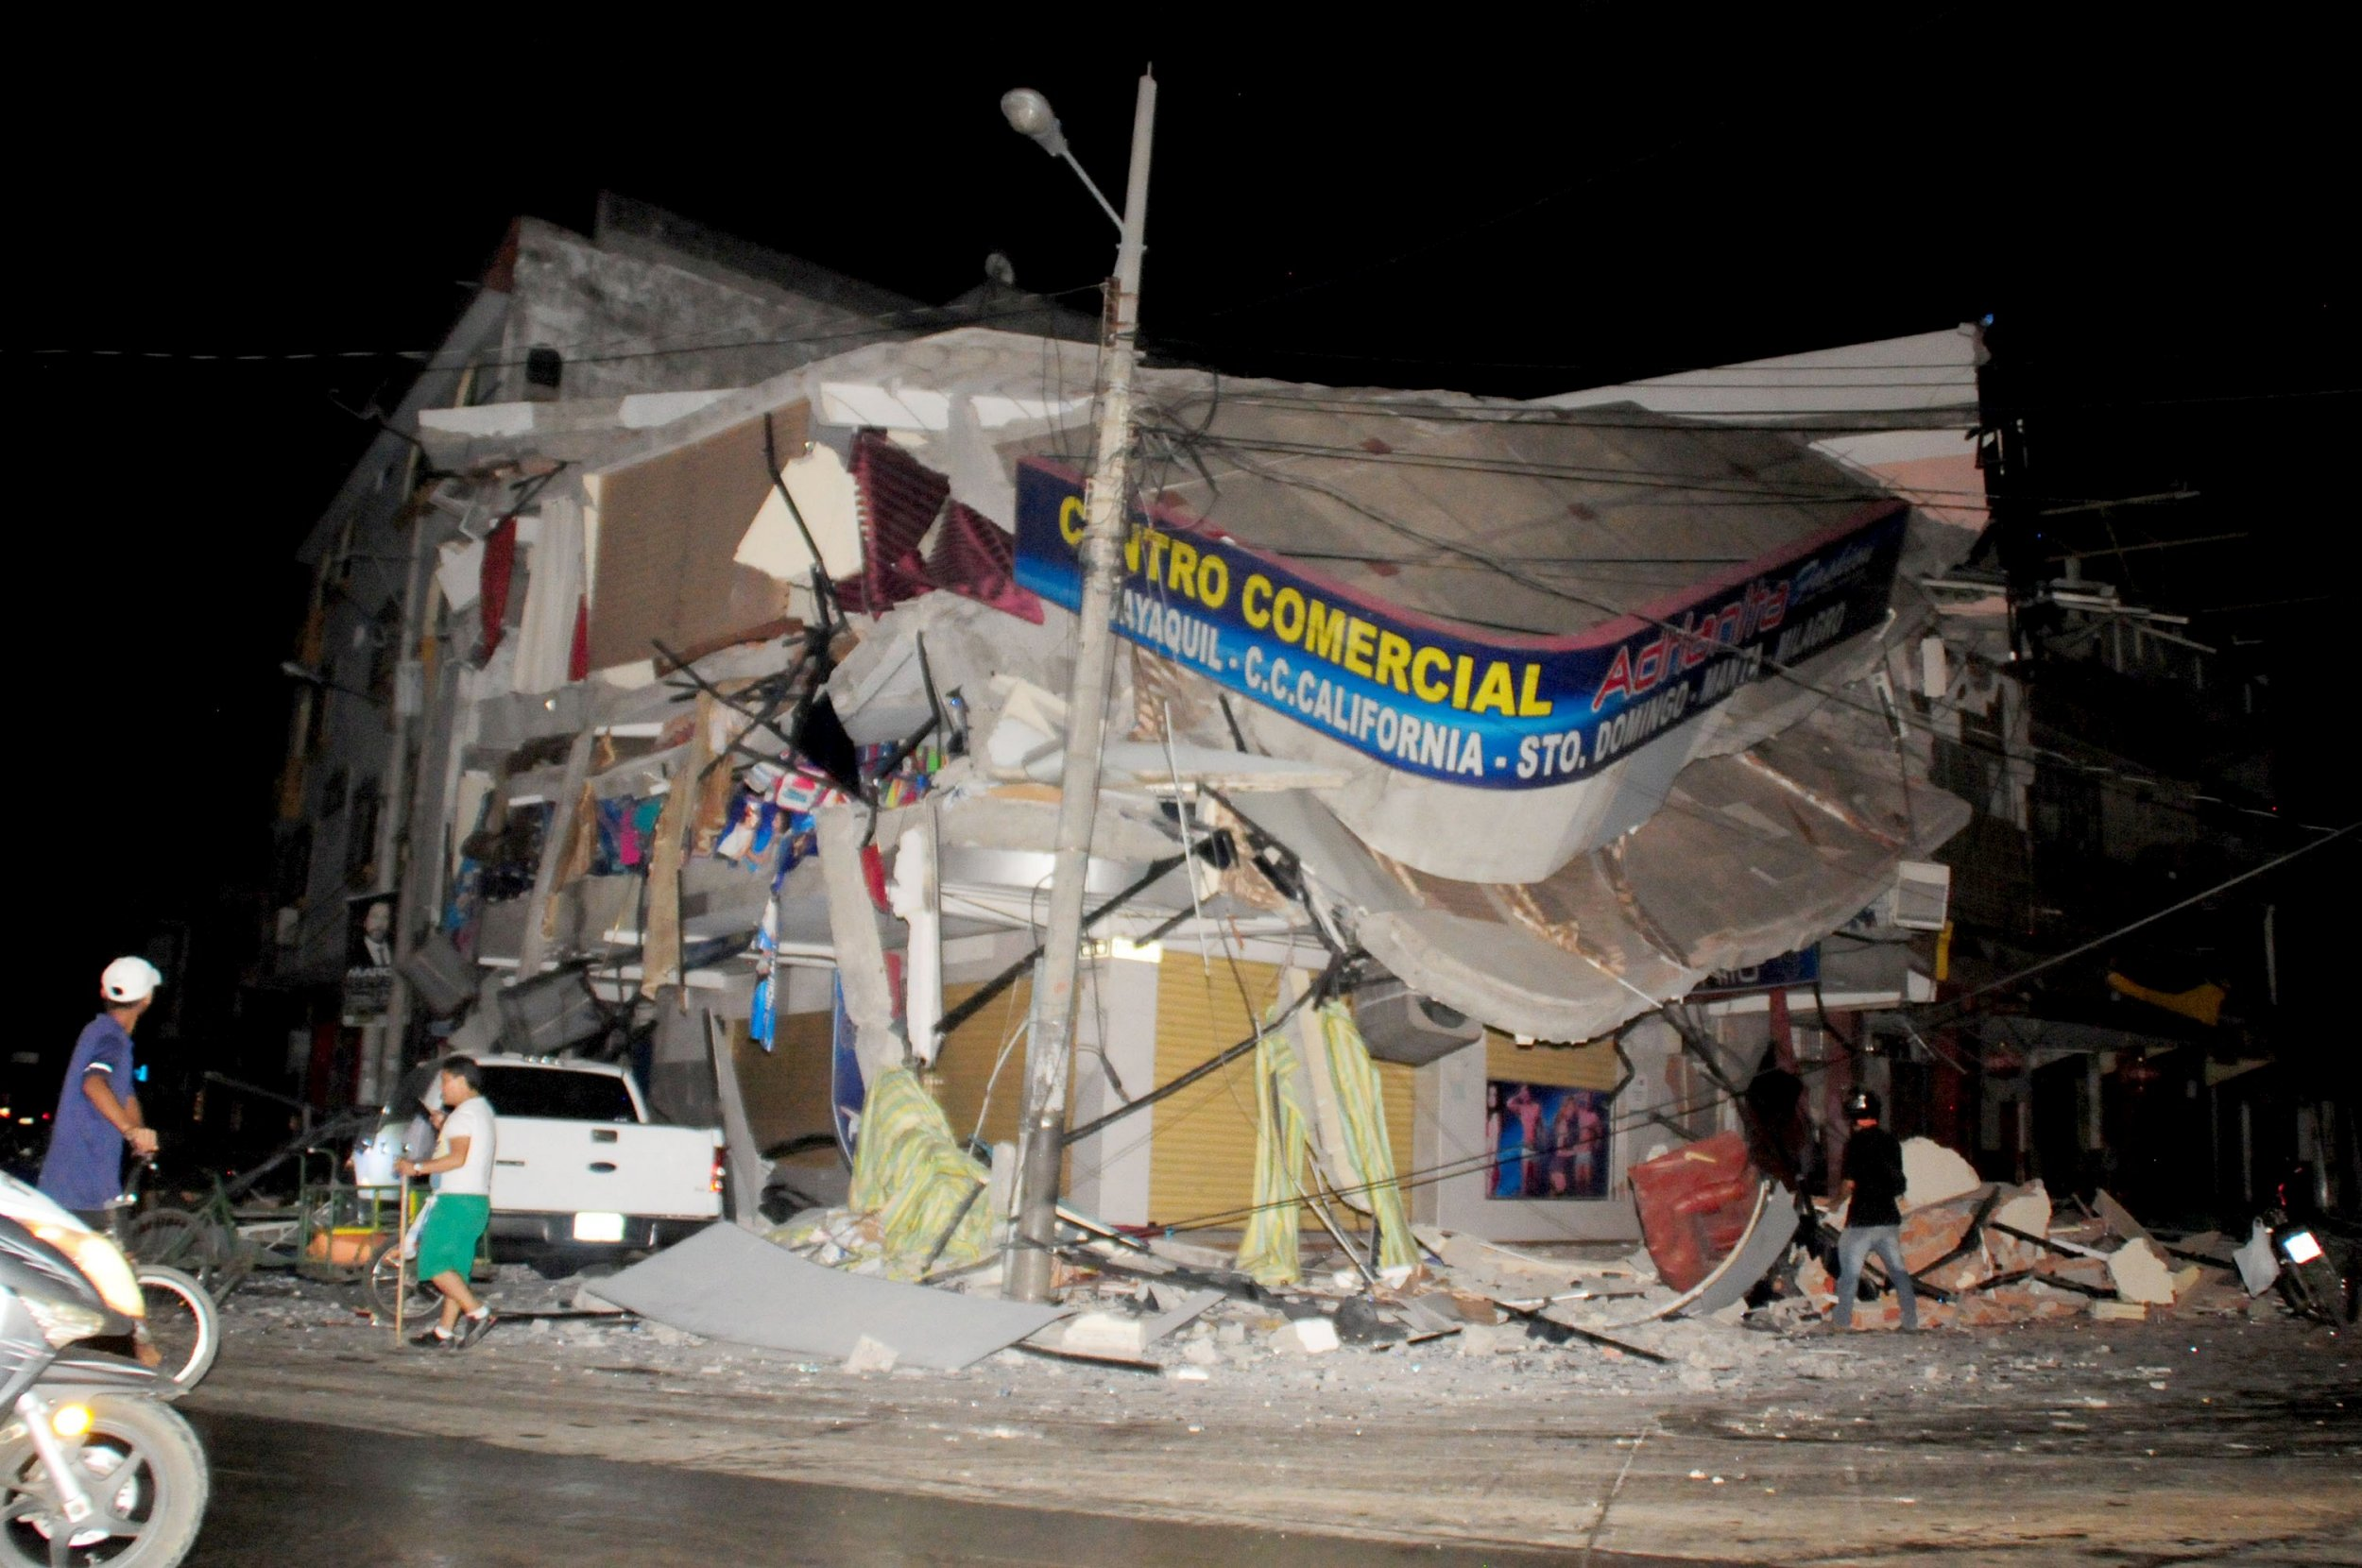 People walk near a damaged house after an earthquake struck off the Pacific coast in Manta, Ecuador, April 16, 2016. REUTERS/Paul Ochoa EDITORIAL USE ONLY. NO RESALES. NO ARCHIVE